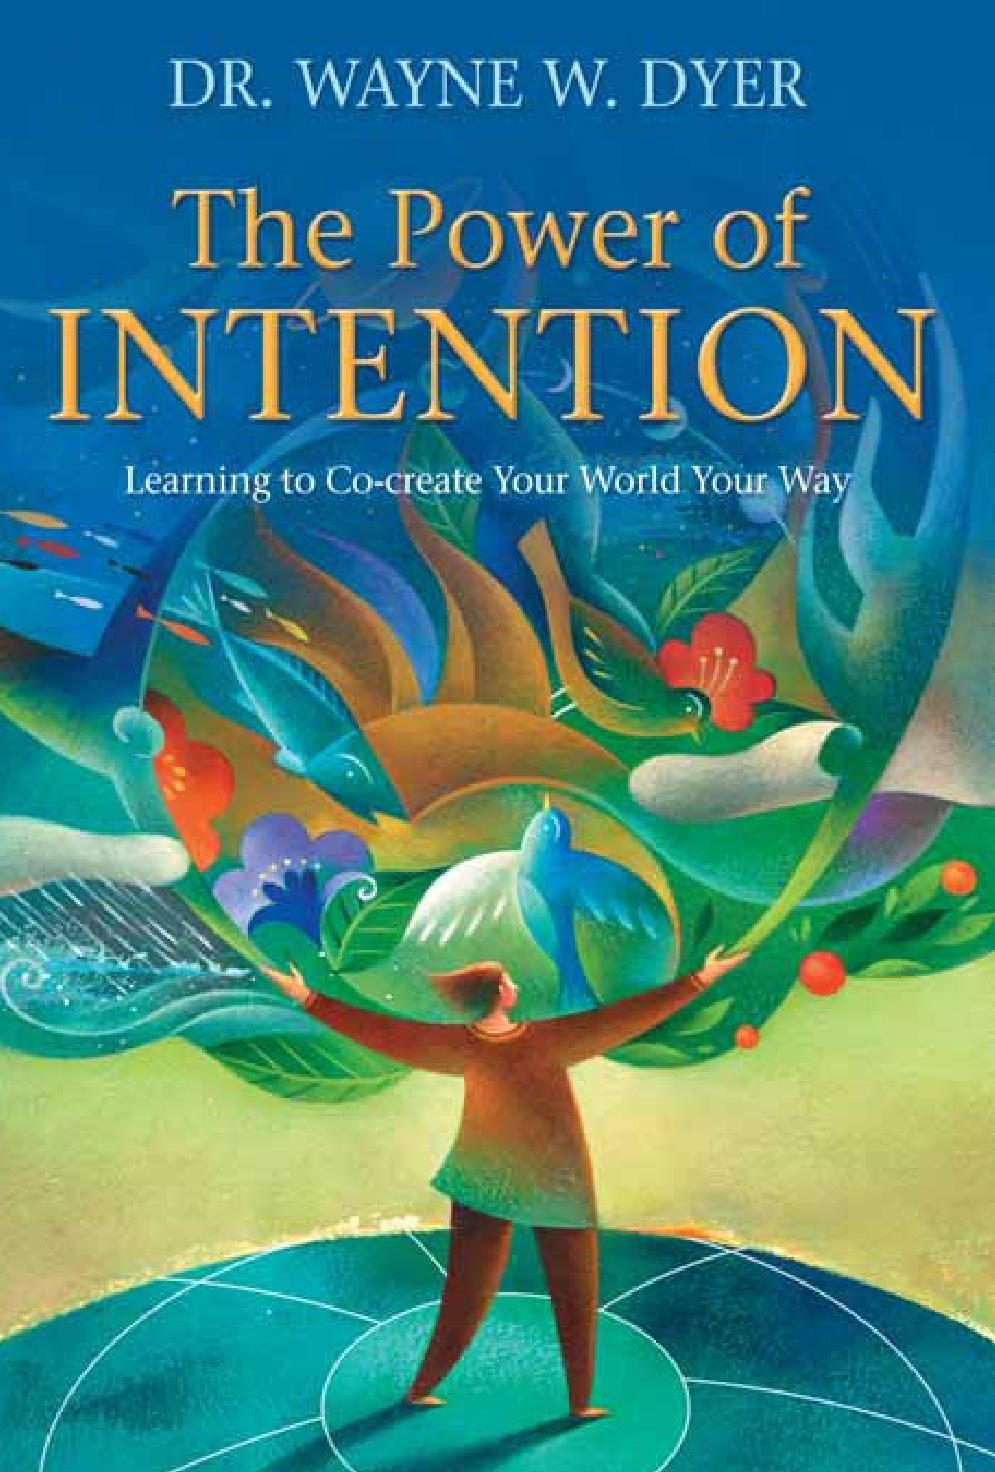 Clippedonissuu From The Power Of Intention By Wayne Dyer